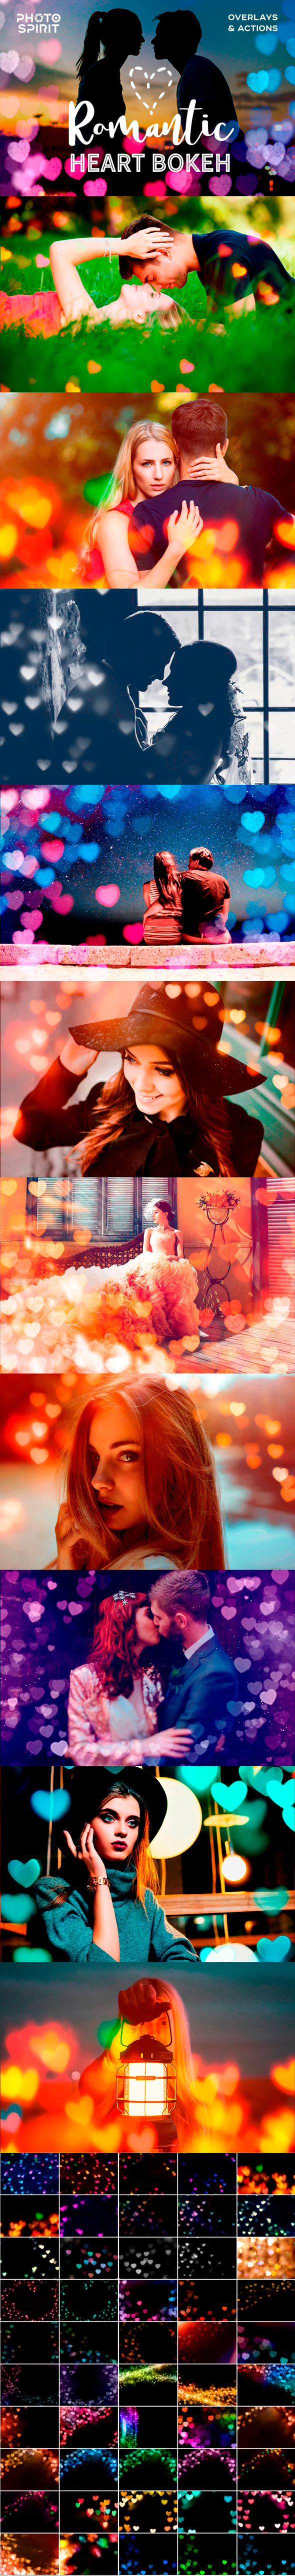 Romantic Heart Bokeh Photo Overlays - Photo Effects Actions